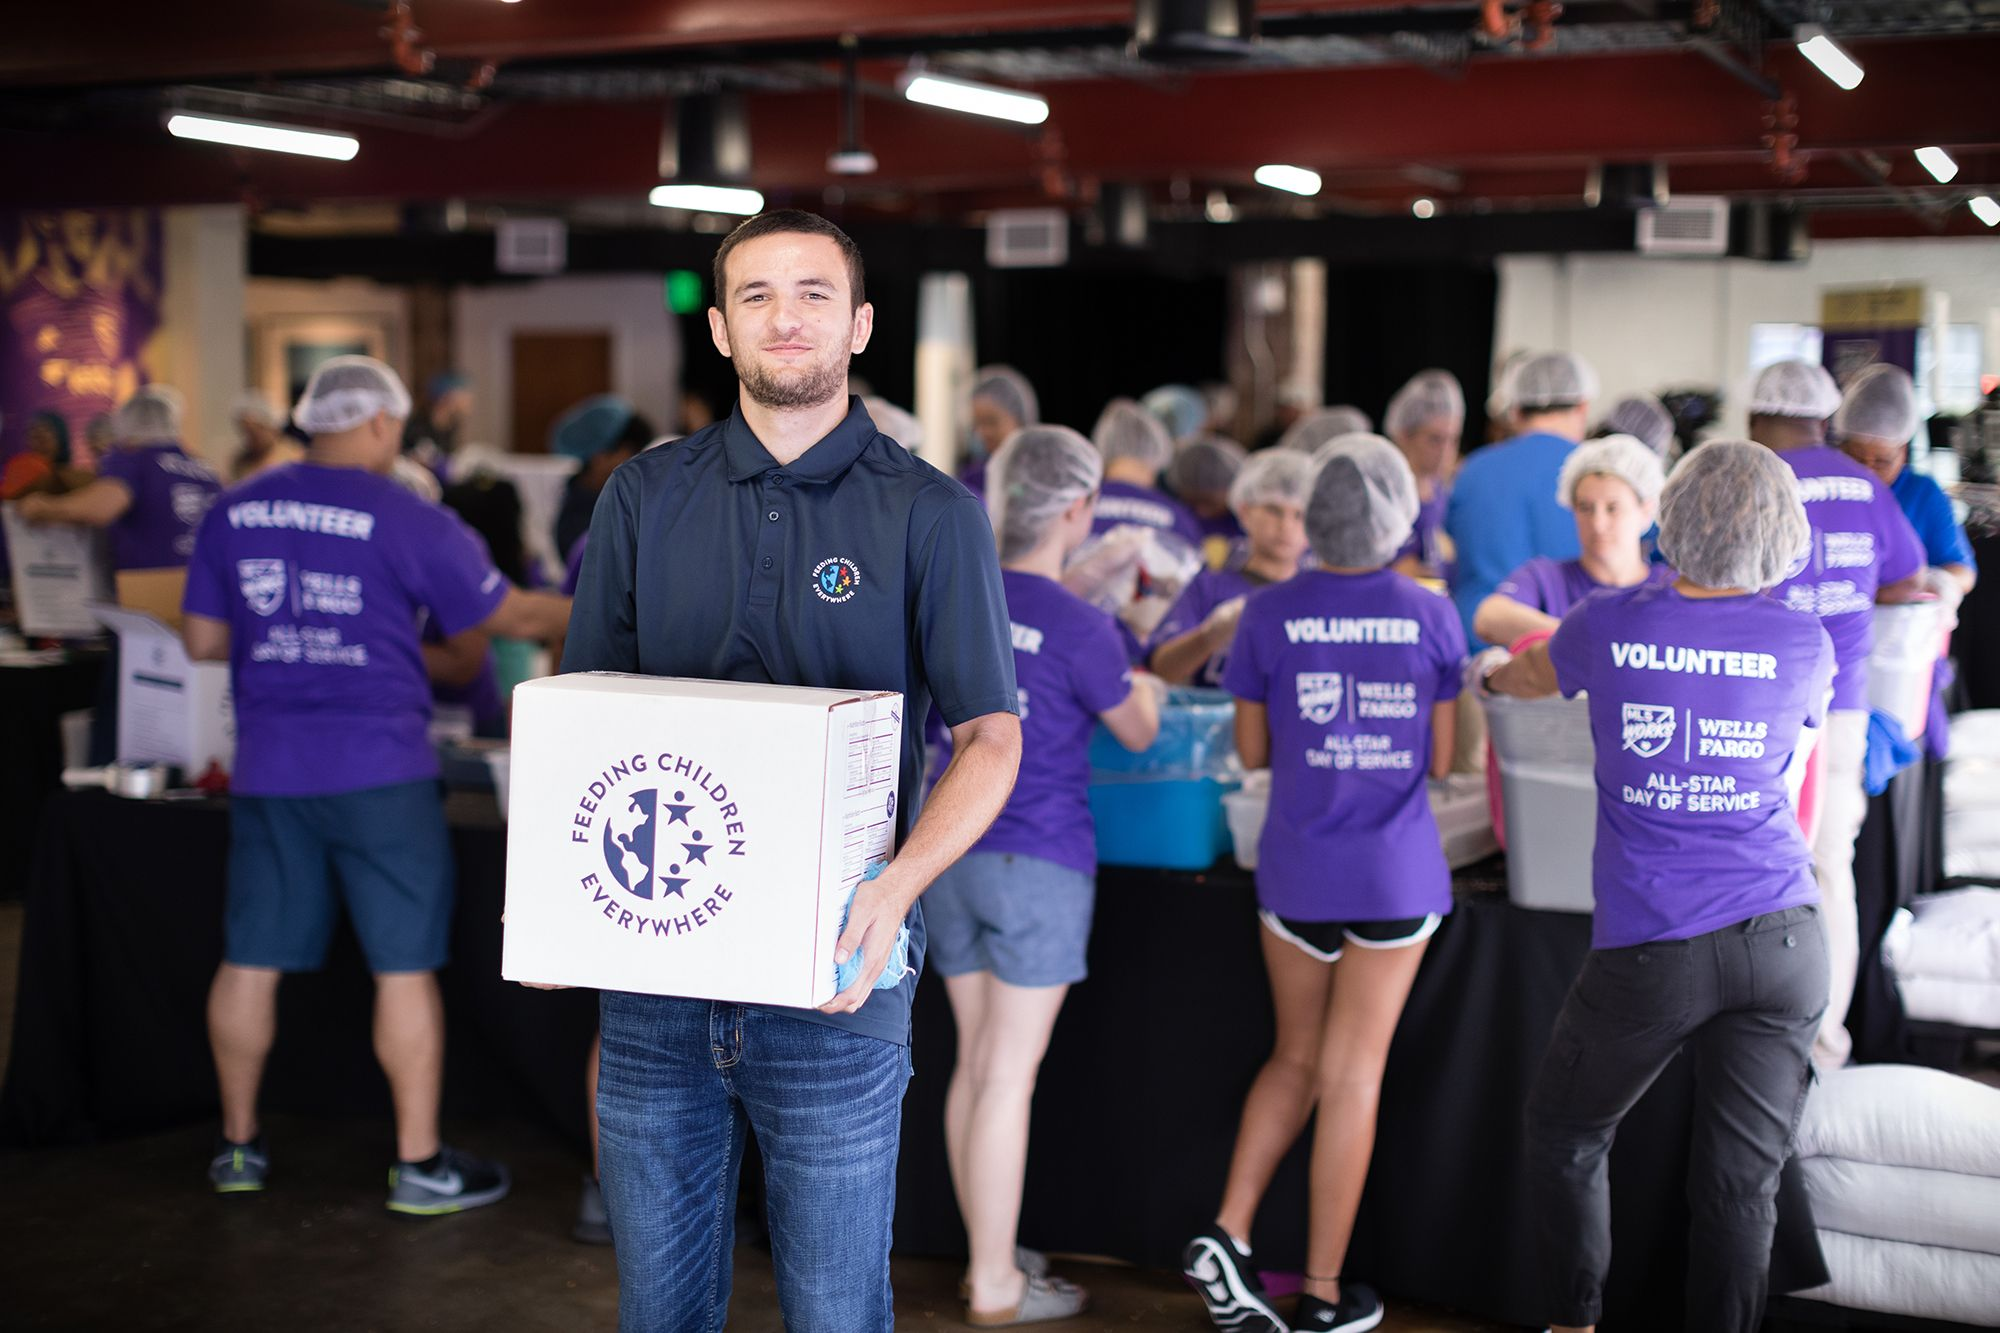 A liberal arts college alumn serves others by helping to feed chilrden everywhere.